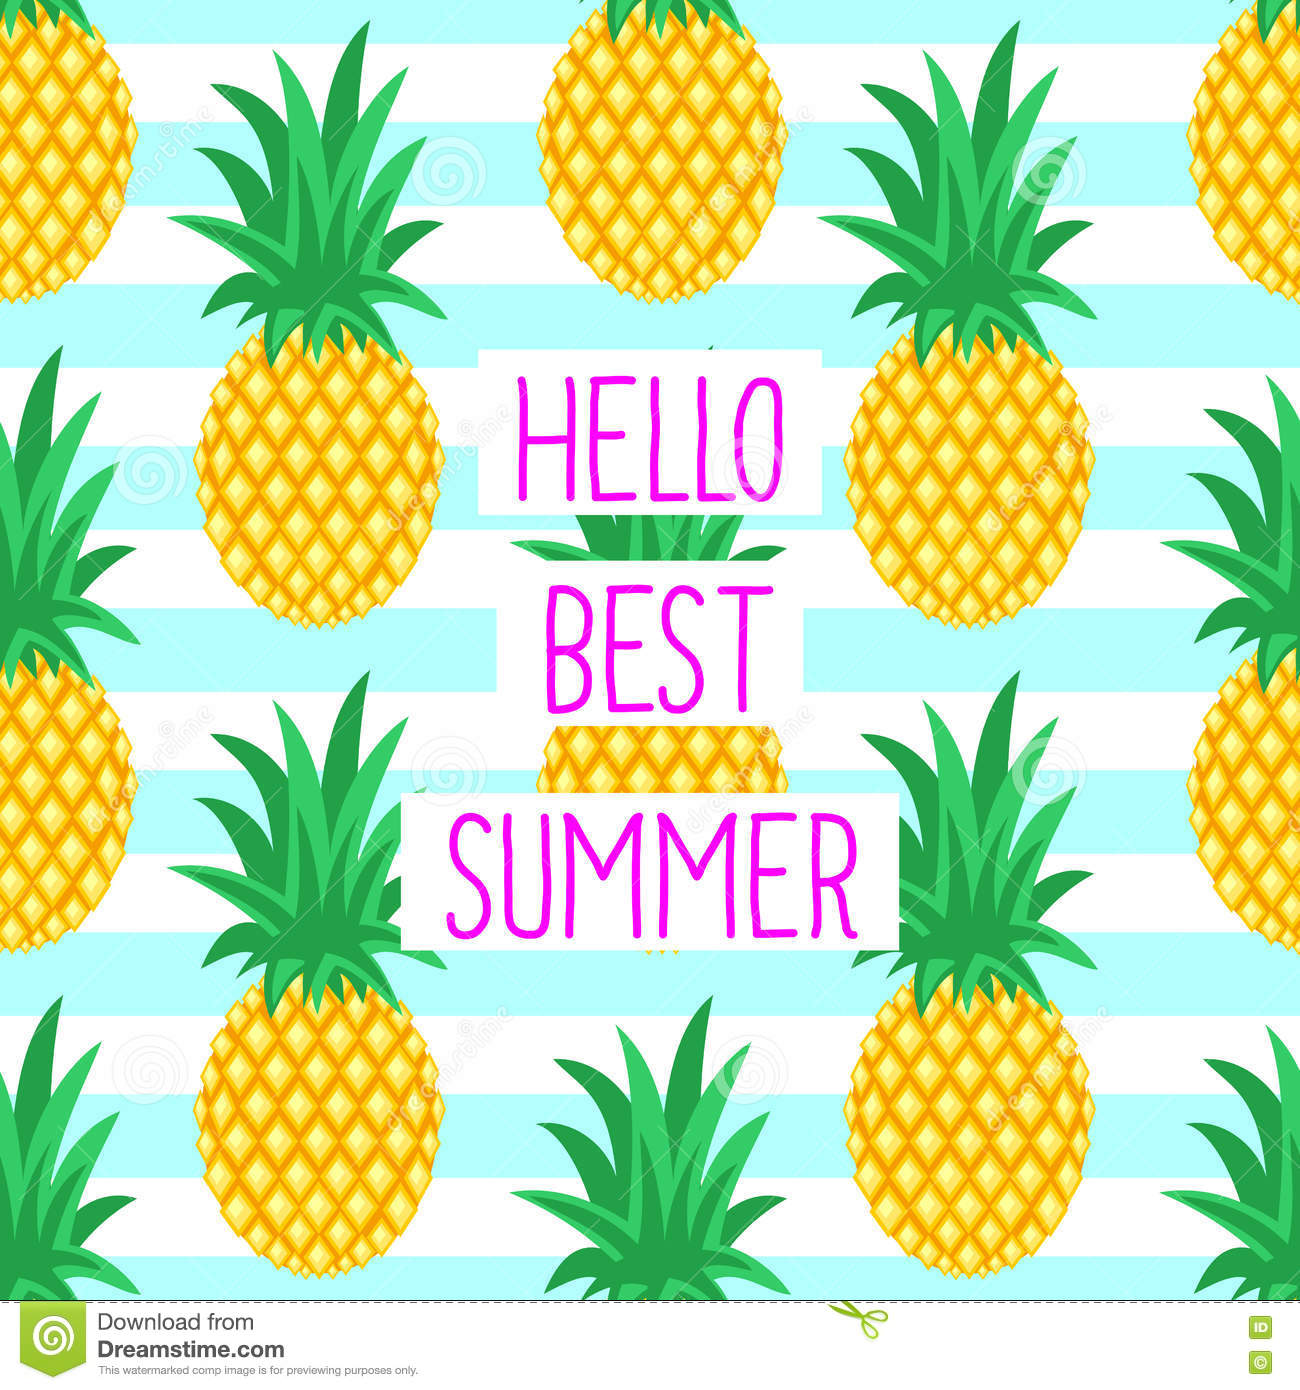 Hello Best Summer Card With Cute Pineapples Stock Vector - Image: 73430249